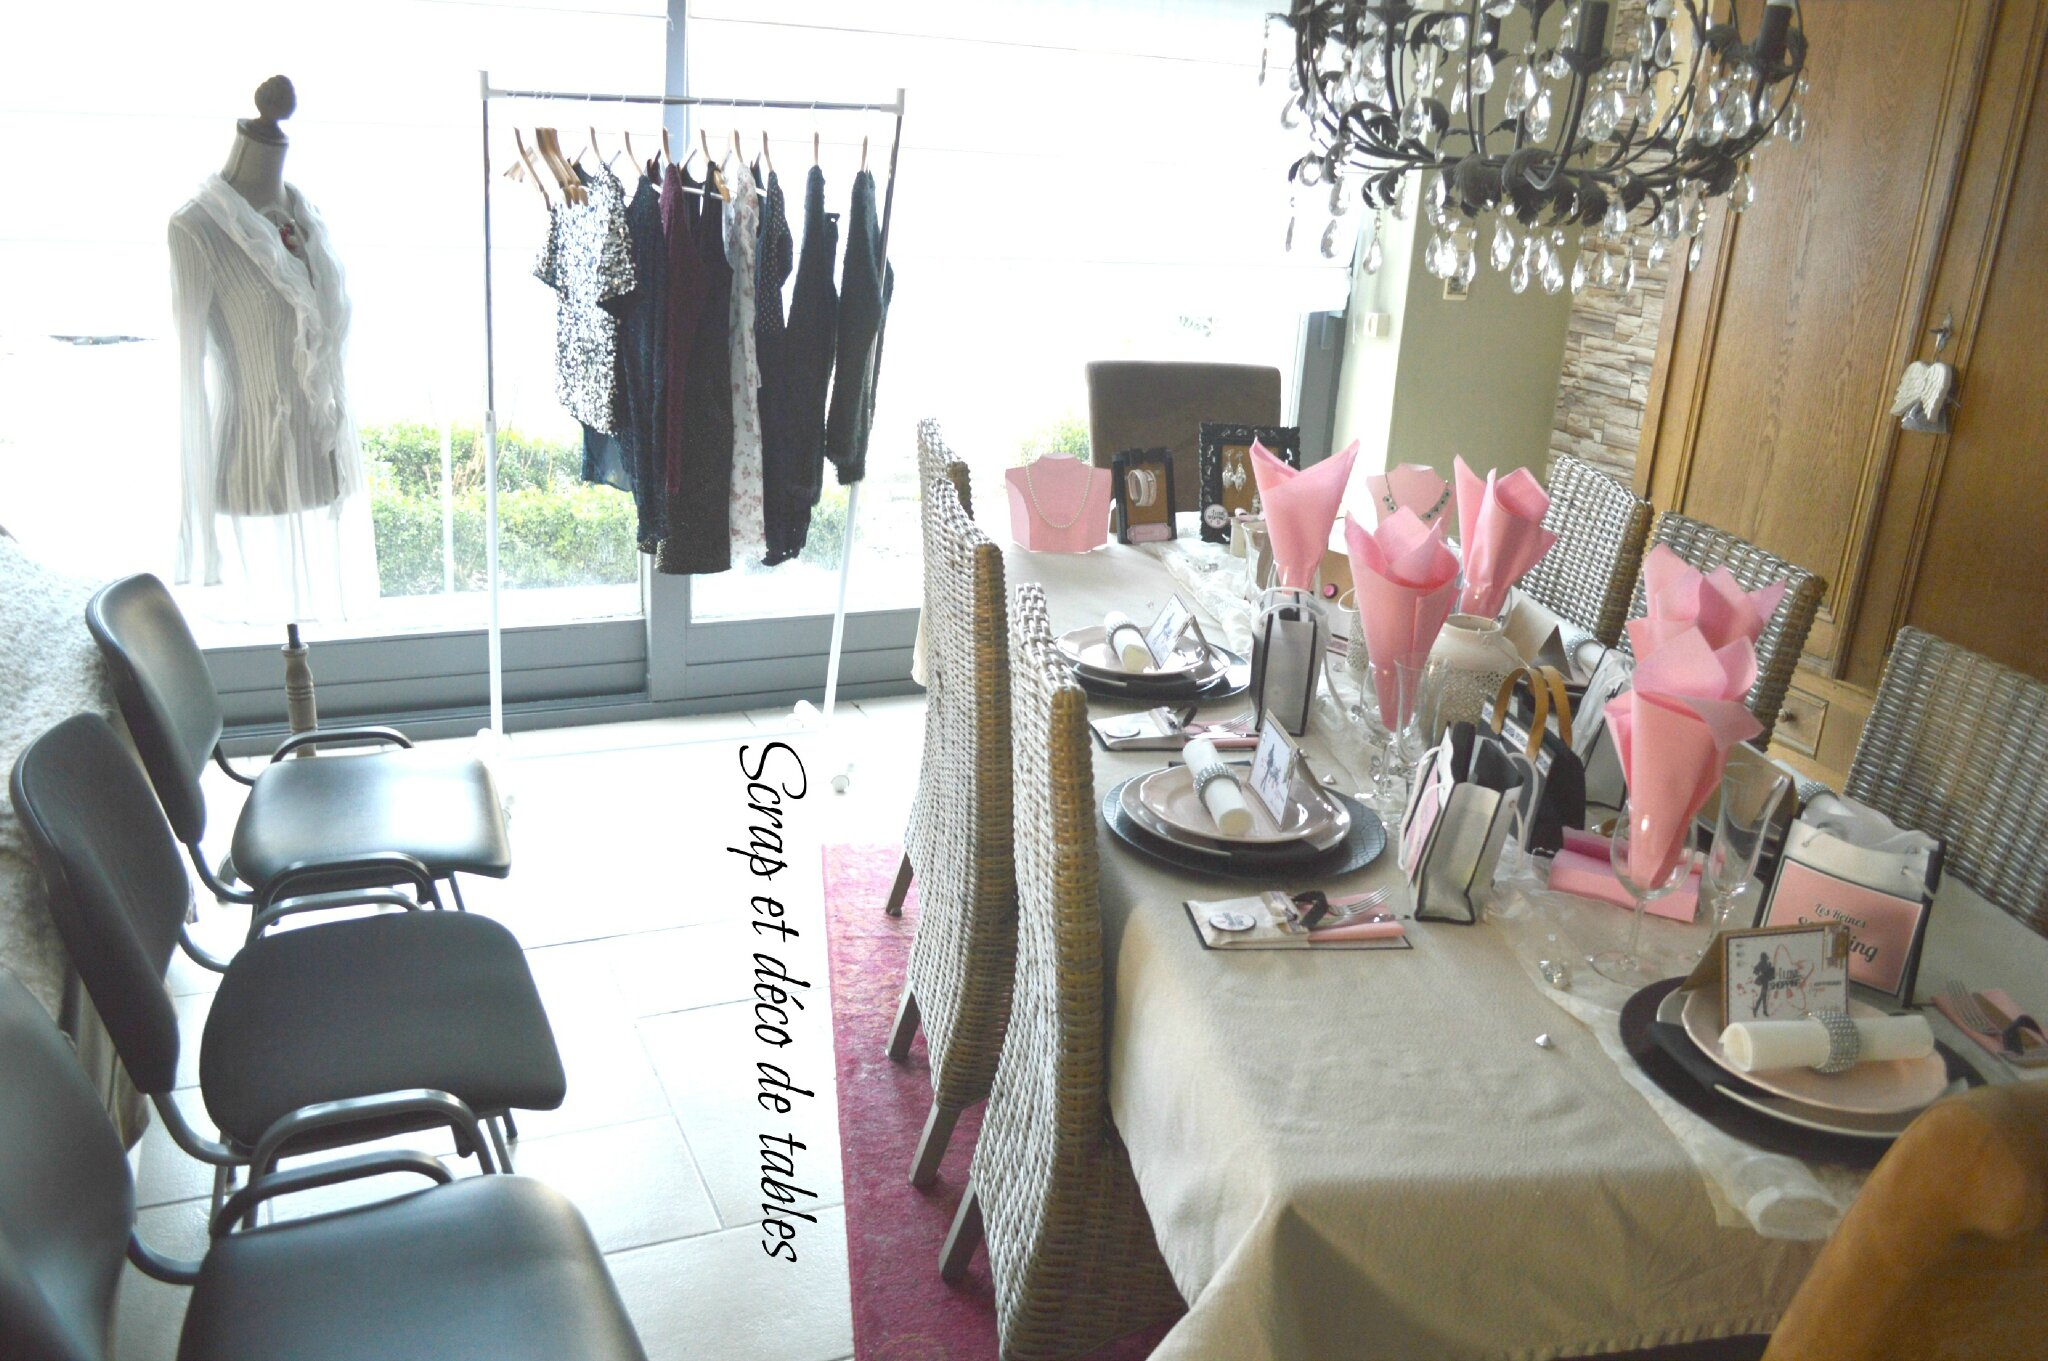 decoration de table les reines du shopping pour les 18